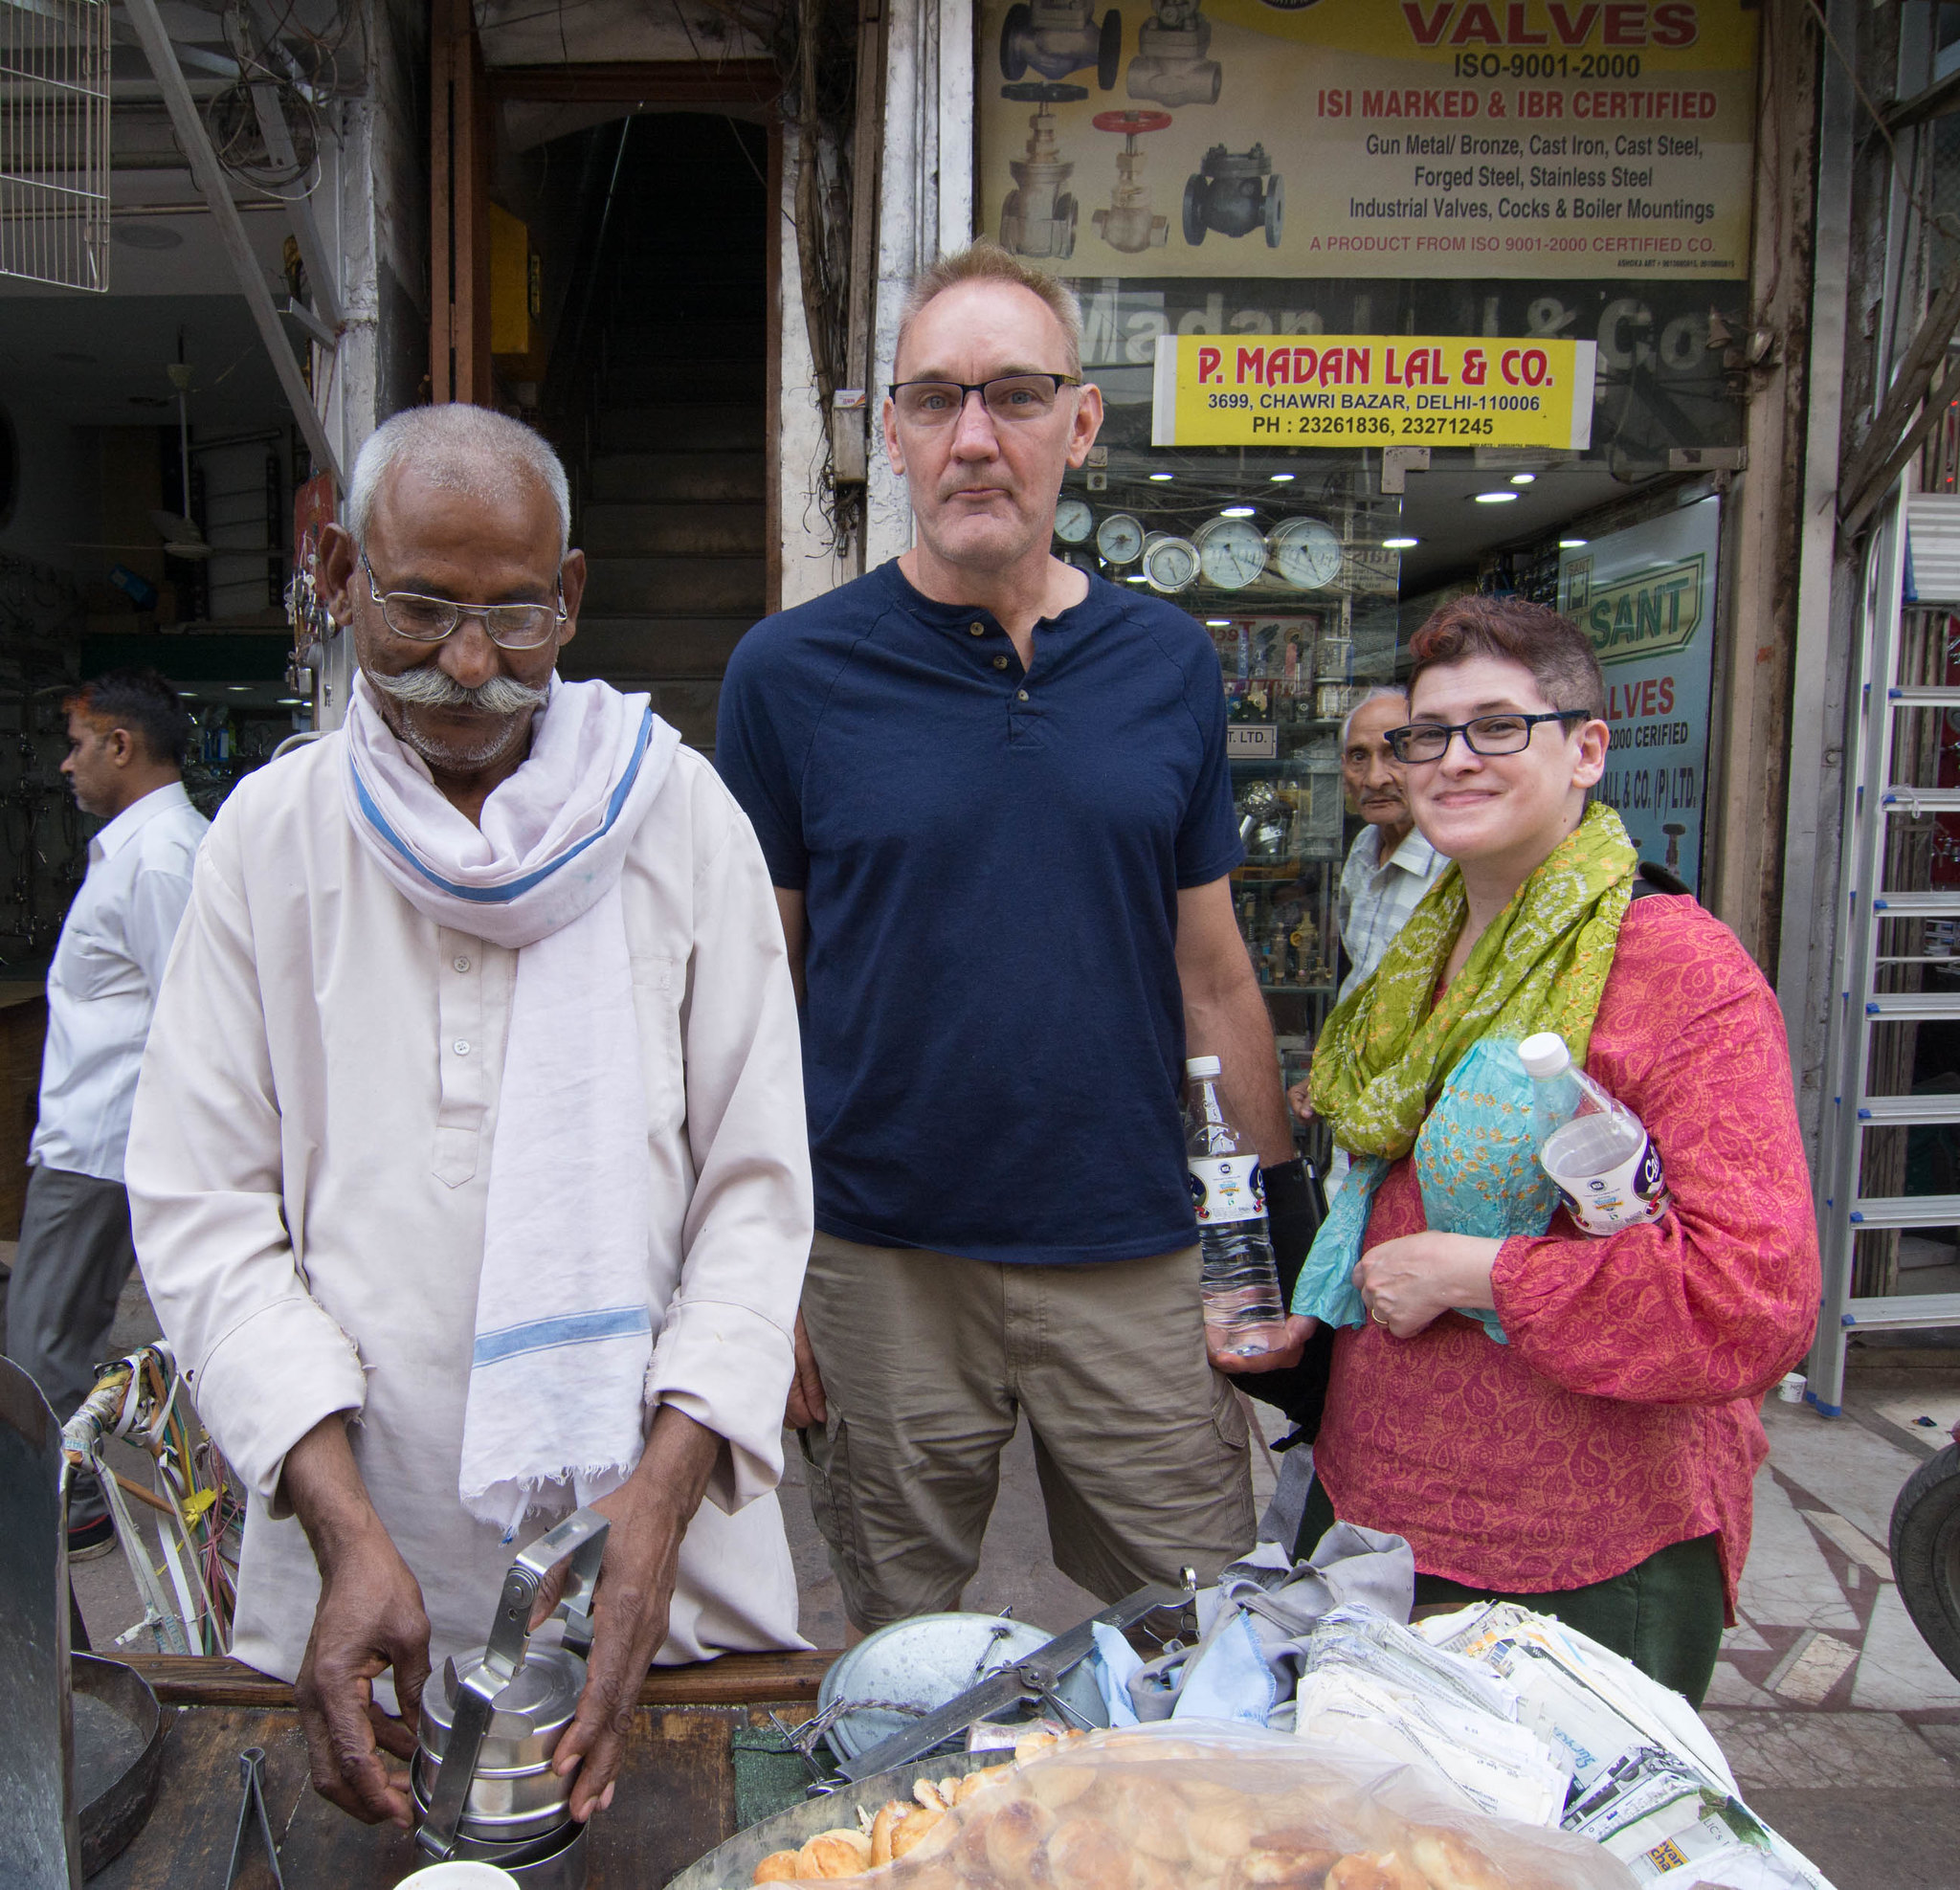 Posing for a photograph with a local cookie seller